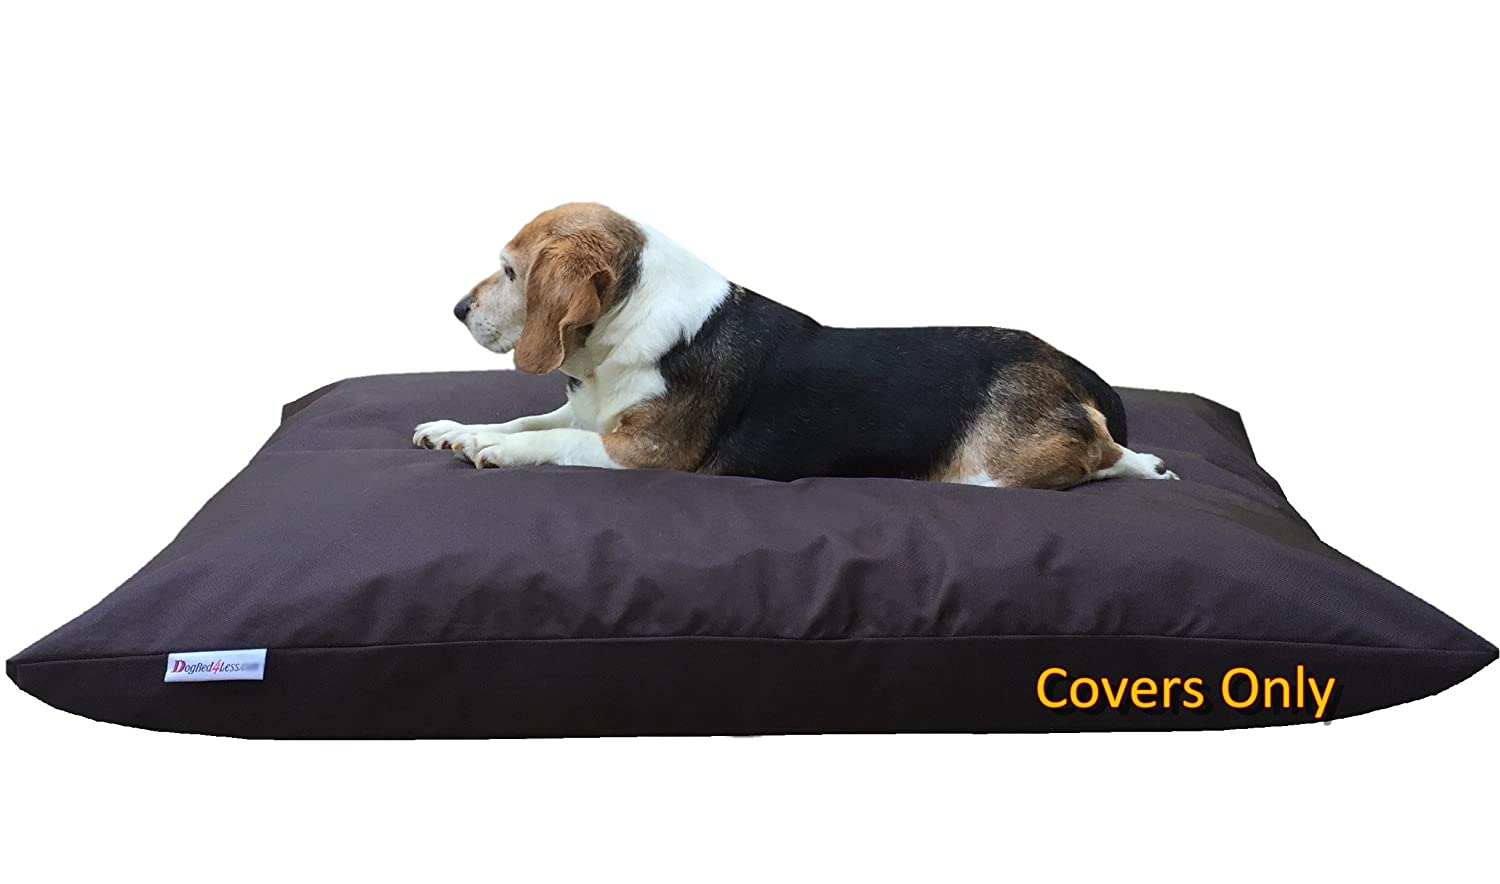 ACW Do It Yourself DIY Pet Bed Pillow Duvet 1680 Durable Cover + Waterproof Internal case for Dog Cat at Medium 36 X29  Seal Brown color Covers only